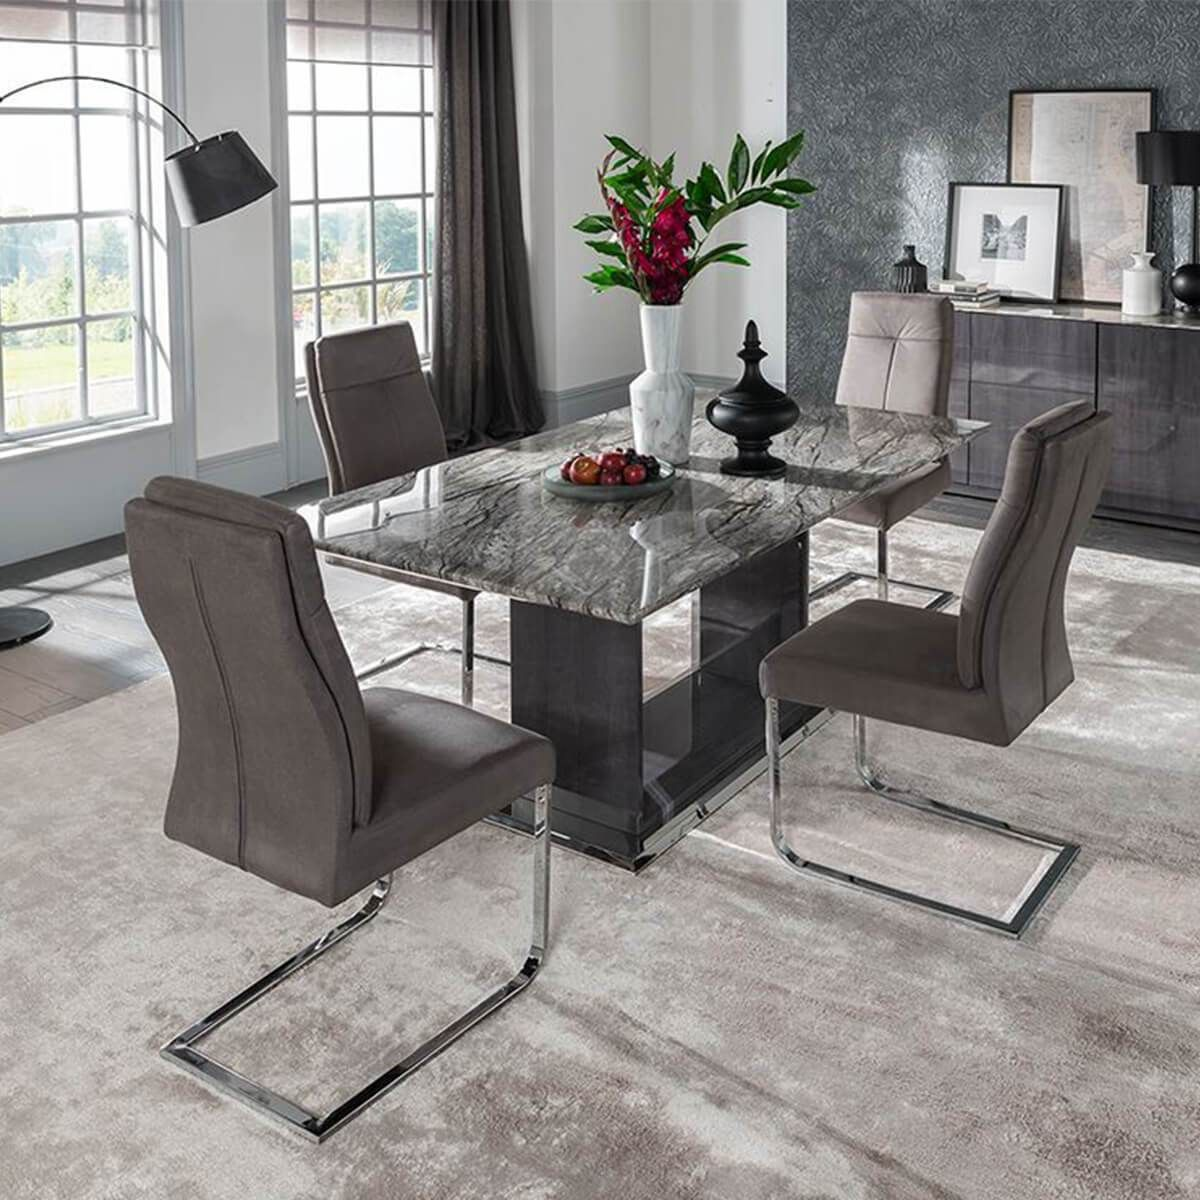 The Rina 4 To 8 Seater Marble Dining Table Set Boasts A Sleek And Modern Design